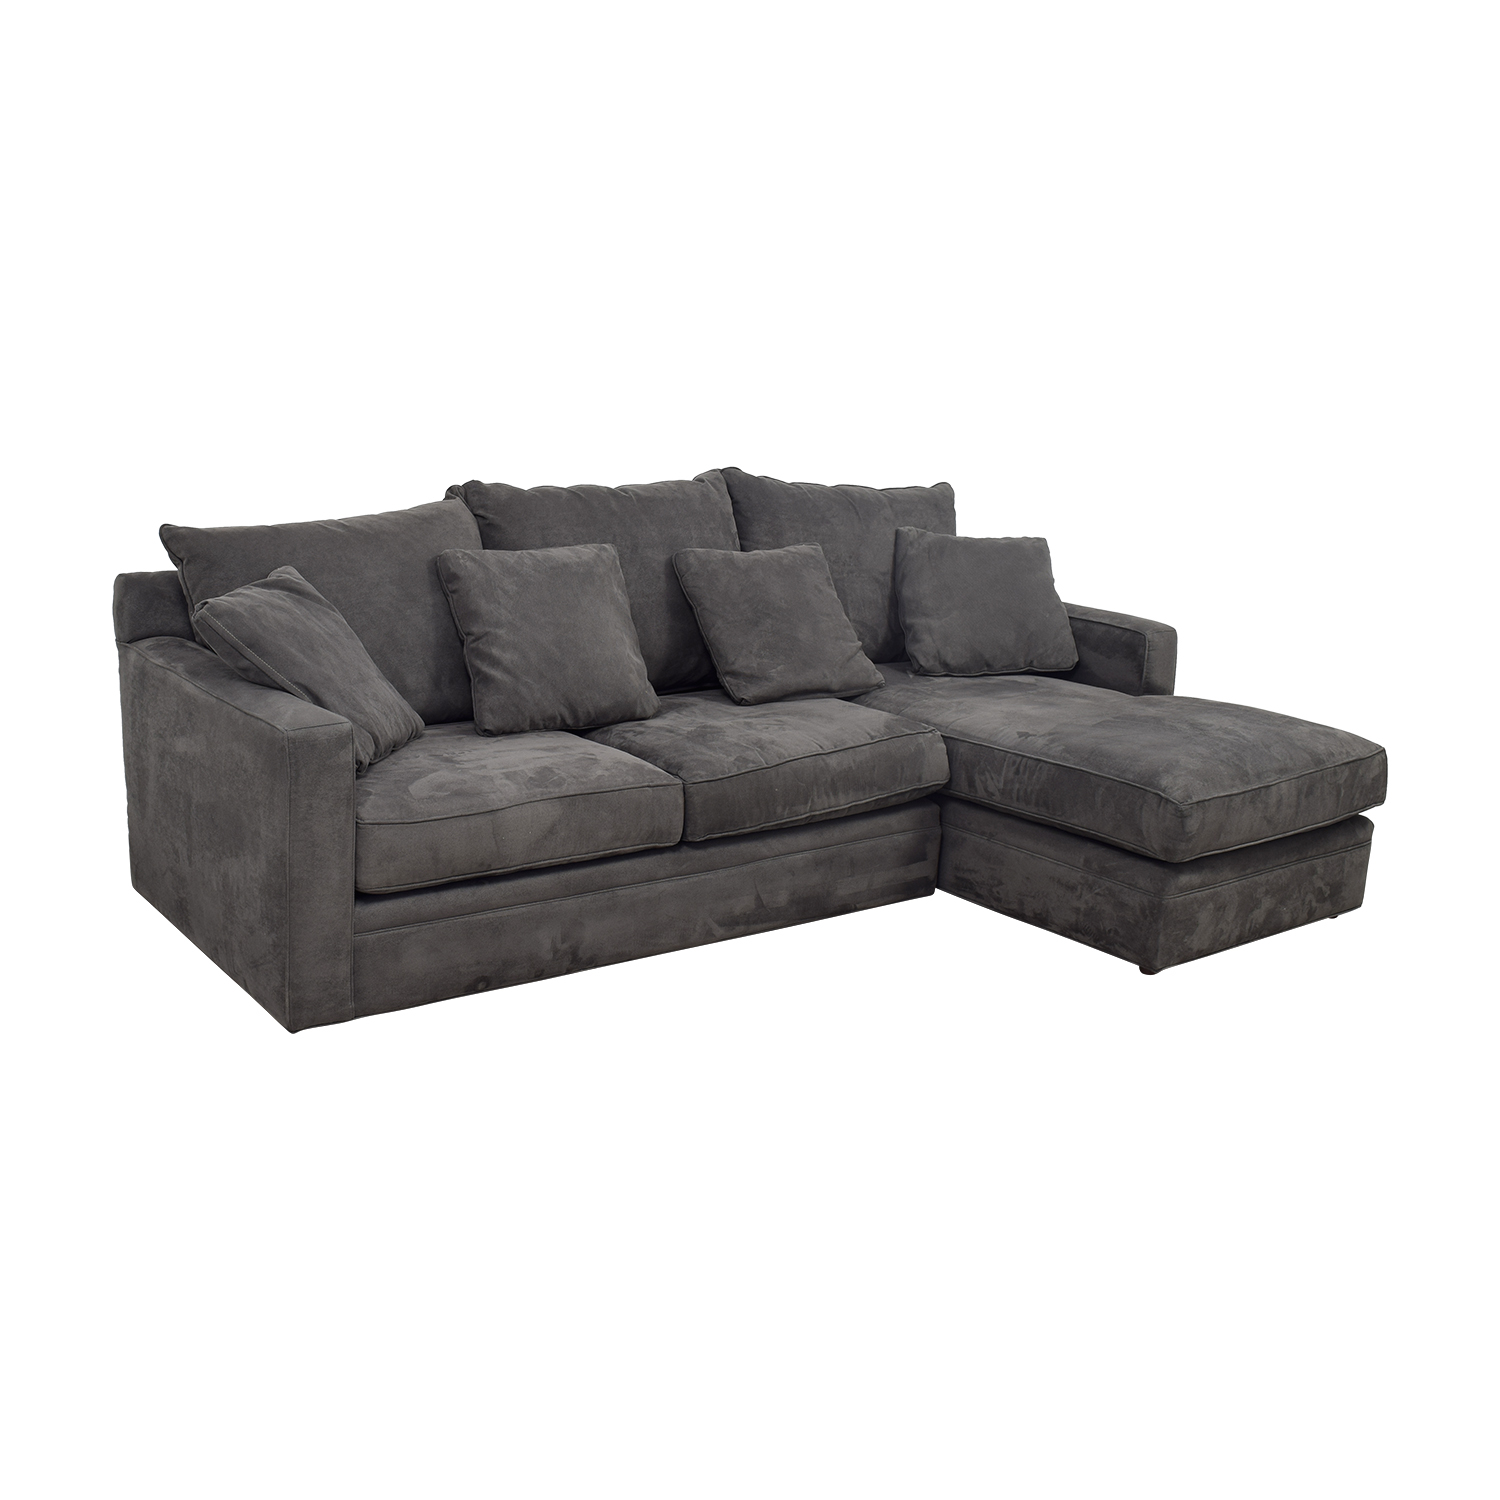 Room & Board Grey Chaise Sectional Room & Board